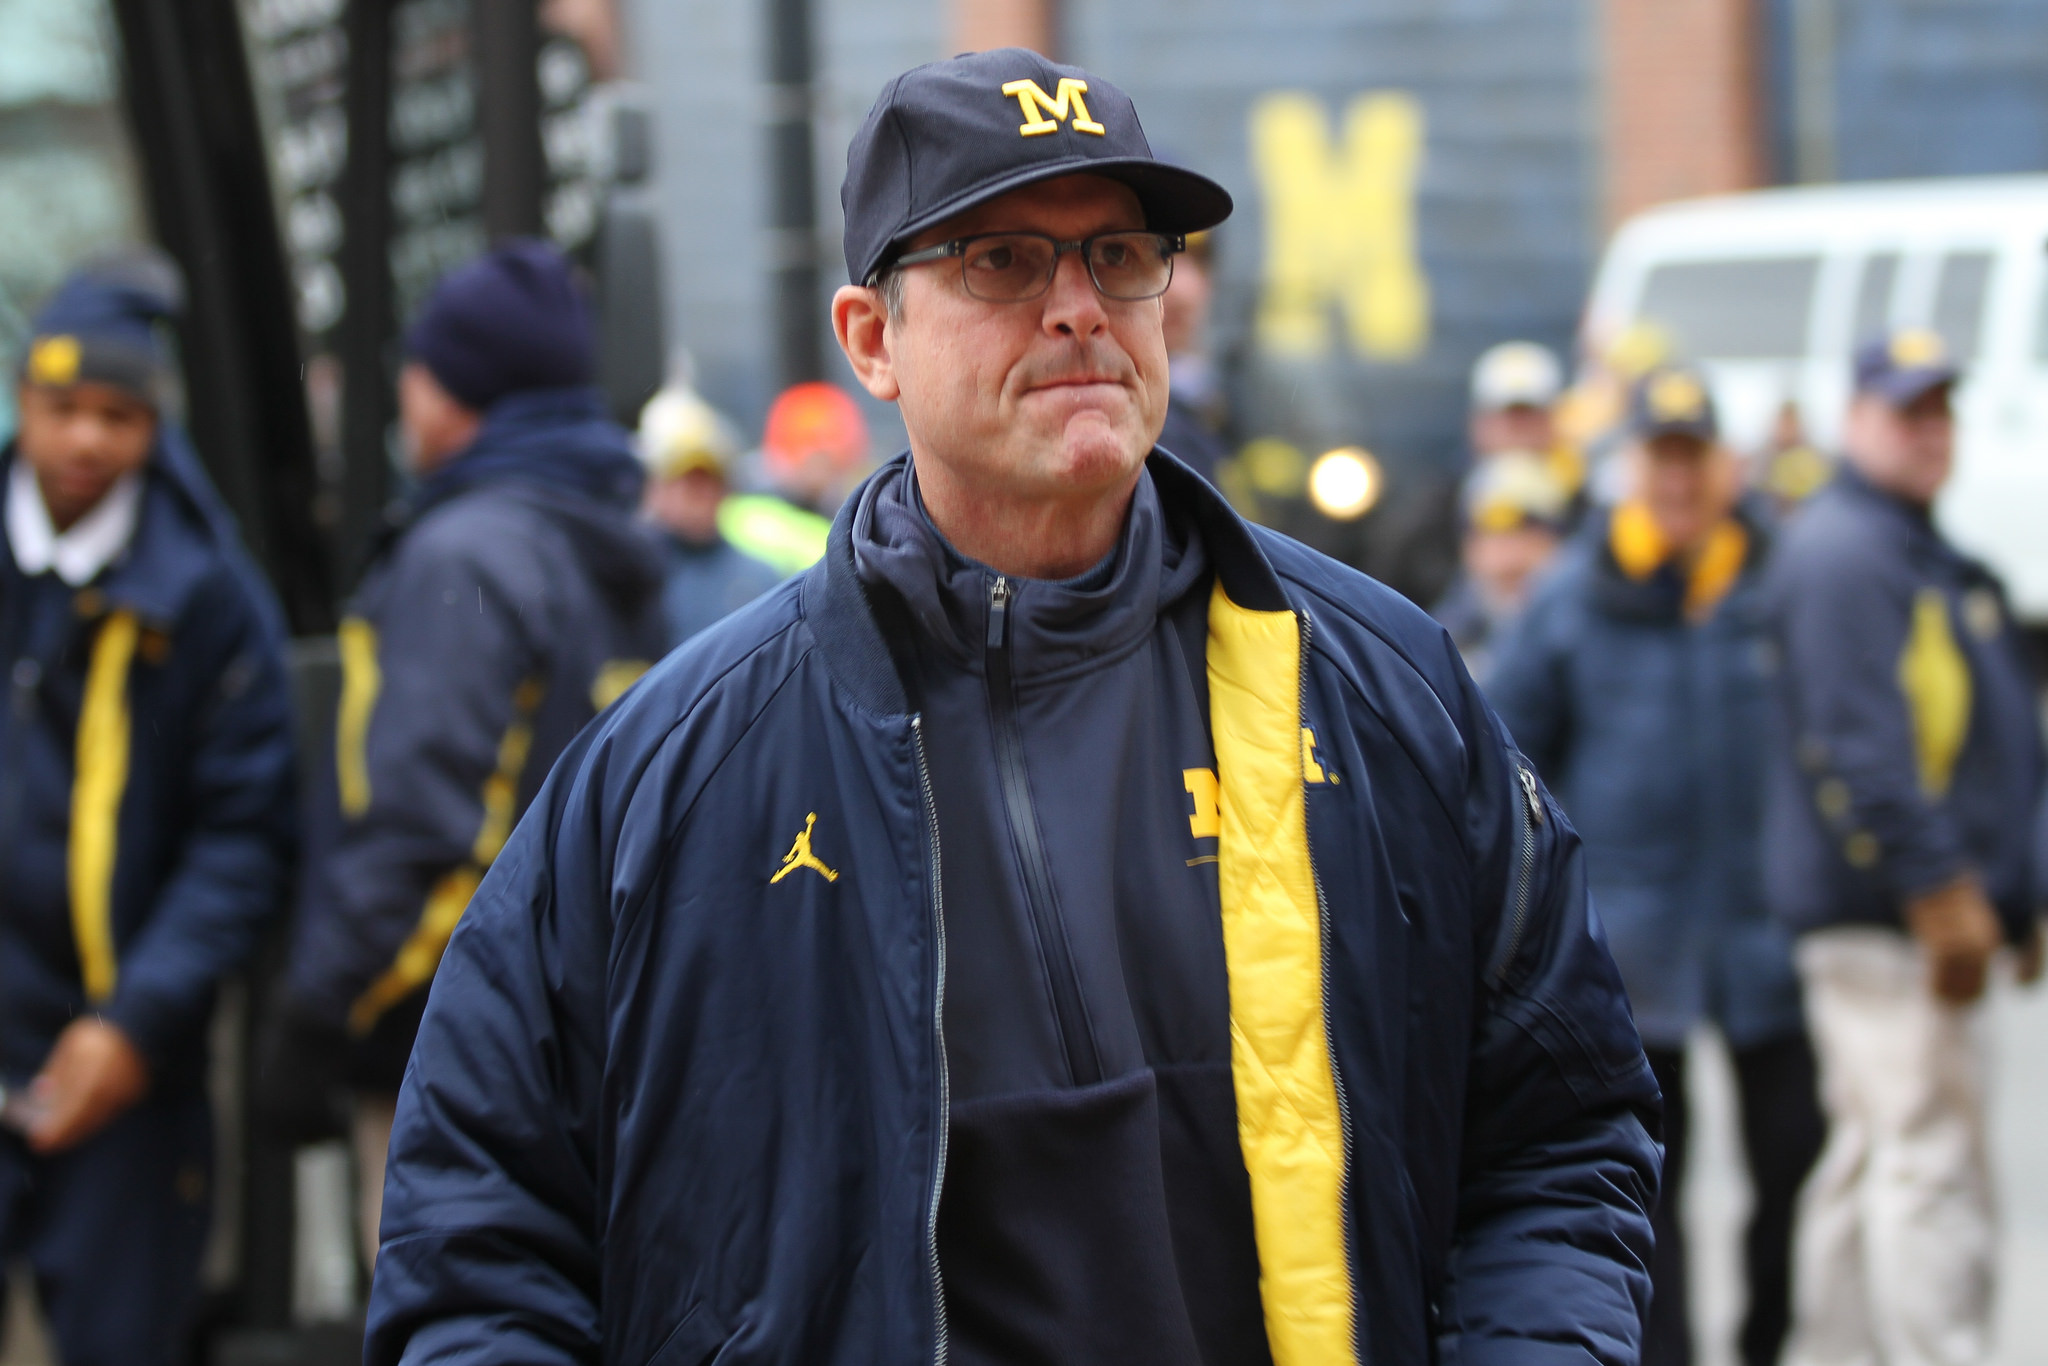 Jim Harbaugh spoke to the media after Michigan's win over Indiana